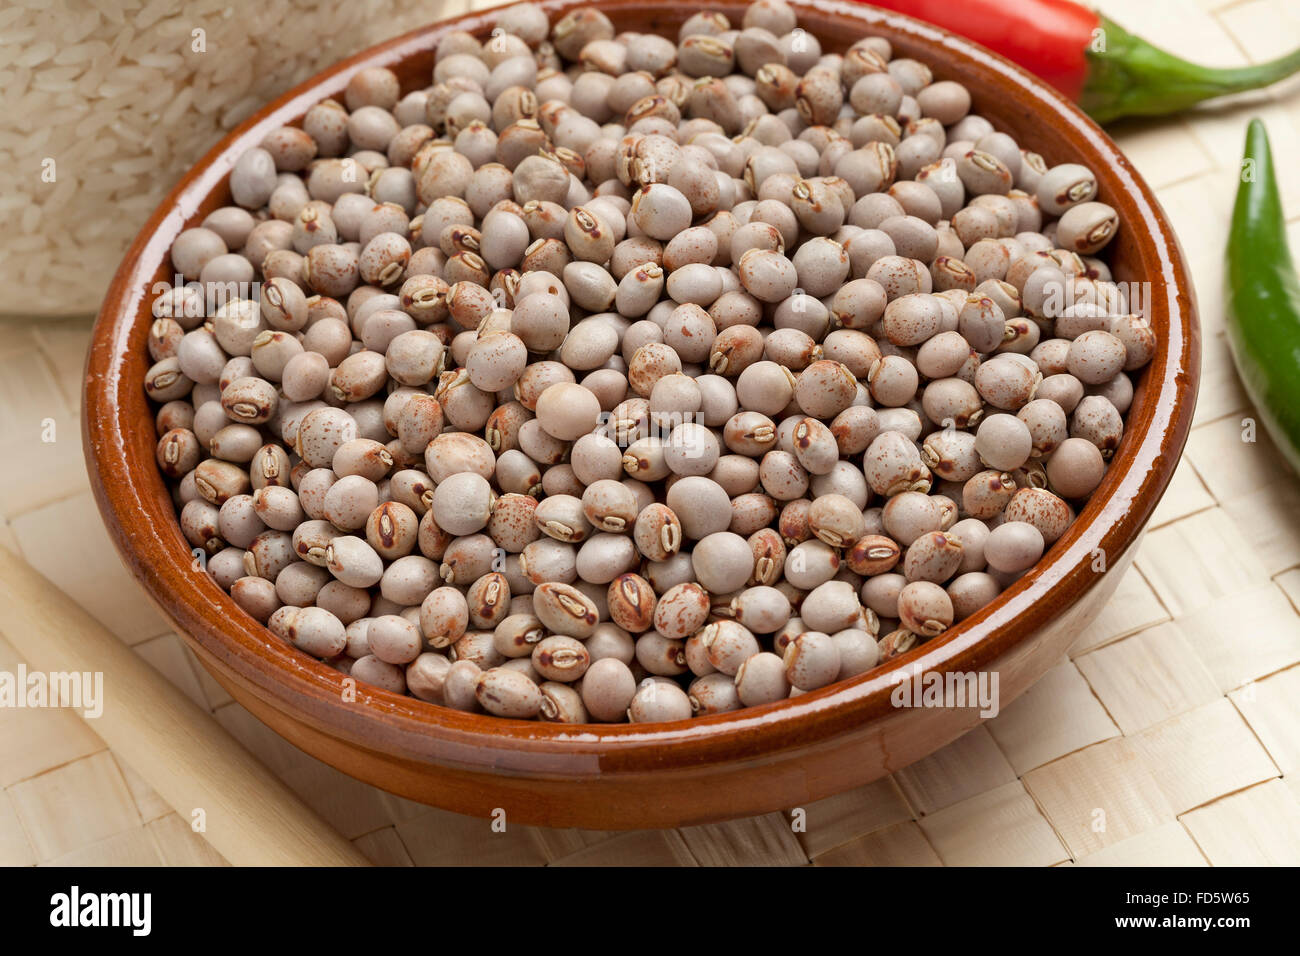 Heap of dried  pigeon peas in a bowl - Stock Image